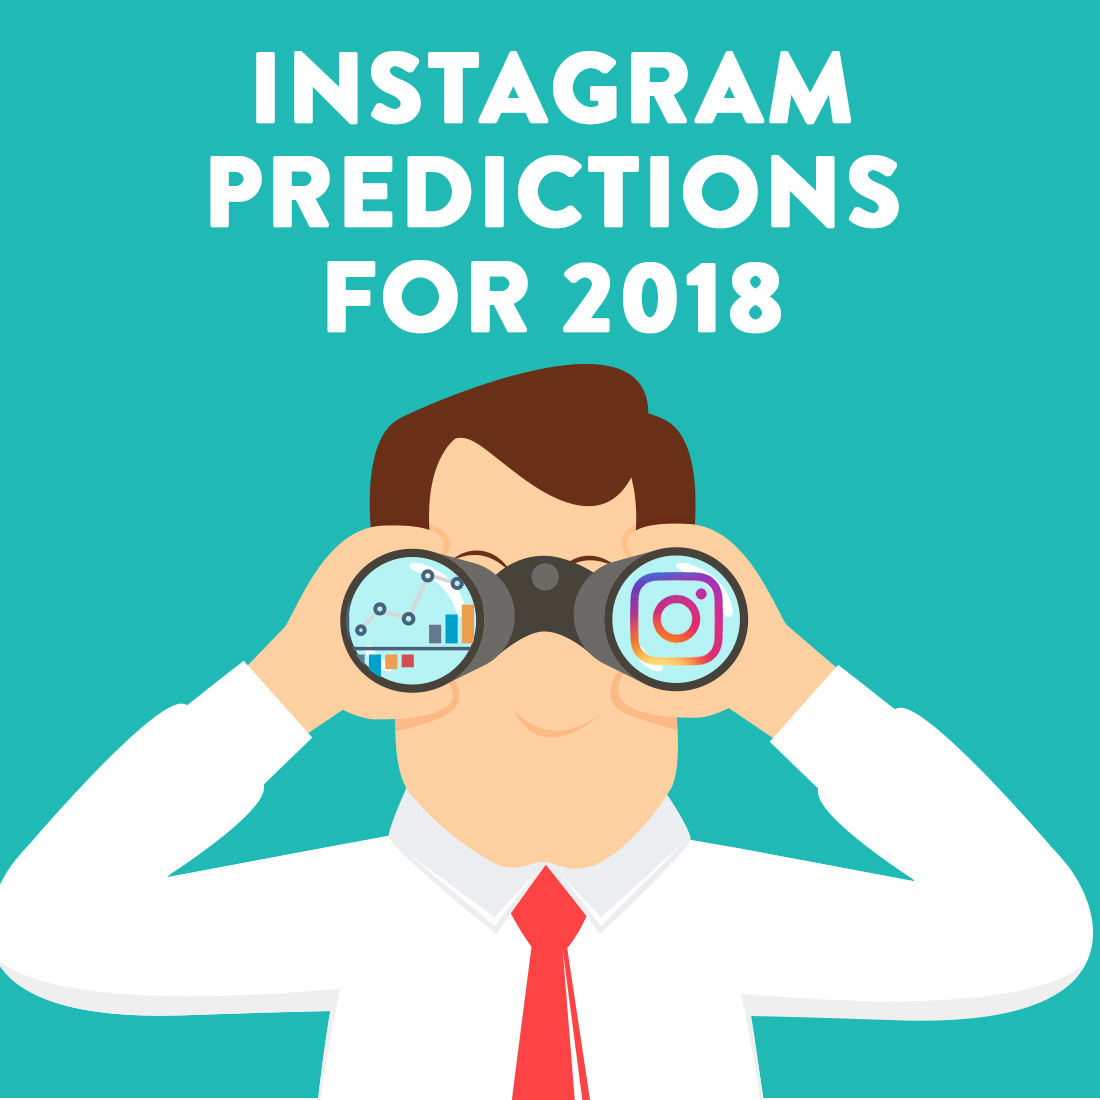 Instagram Predictions for 2018